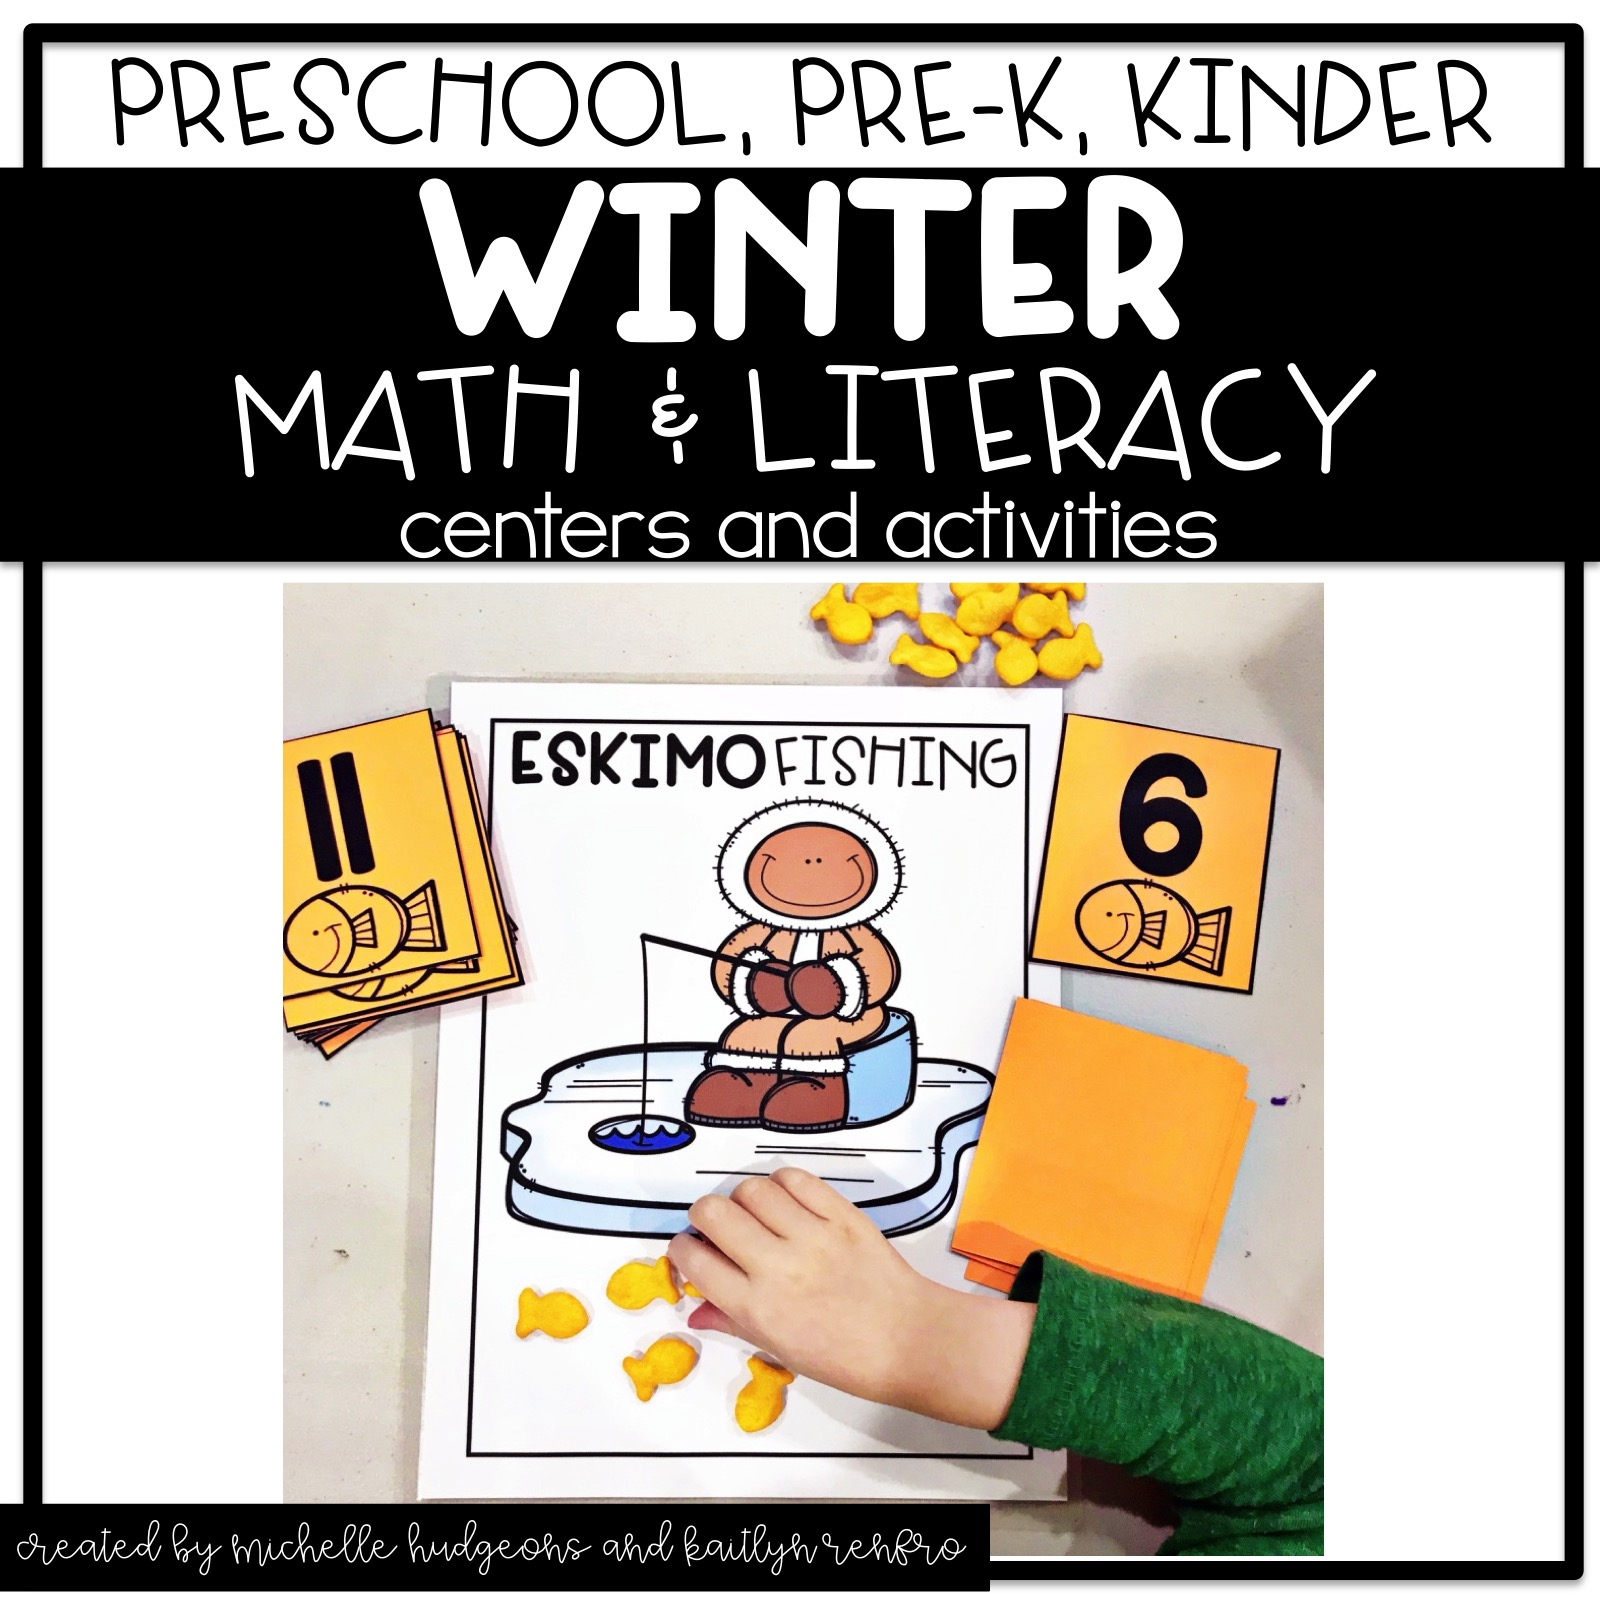 Preschool/Kinder Activities